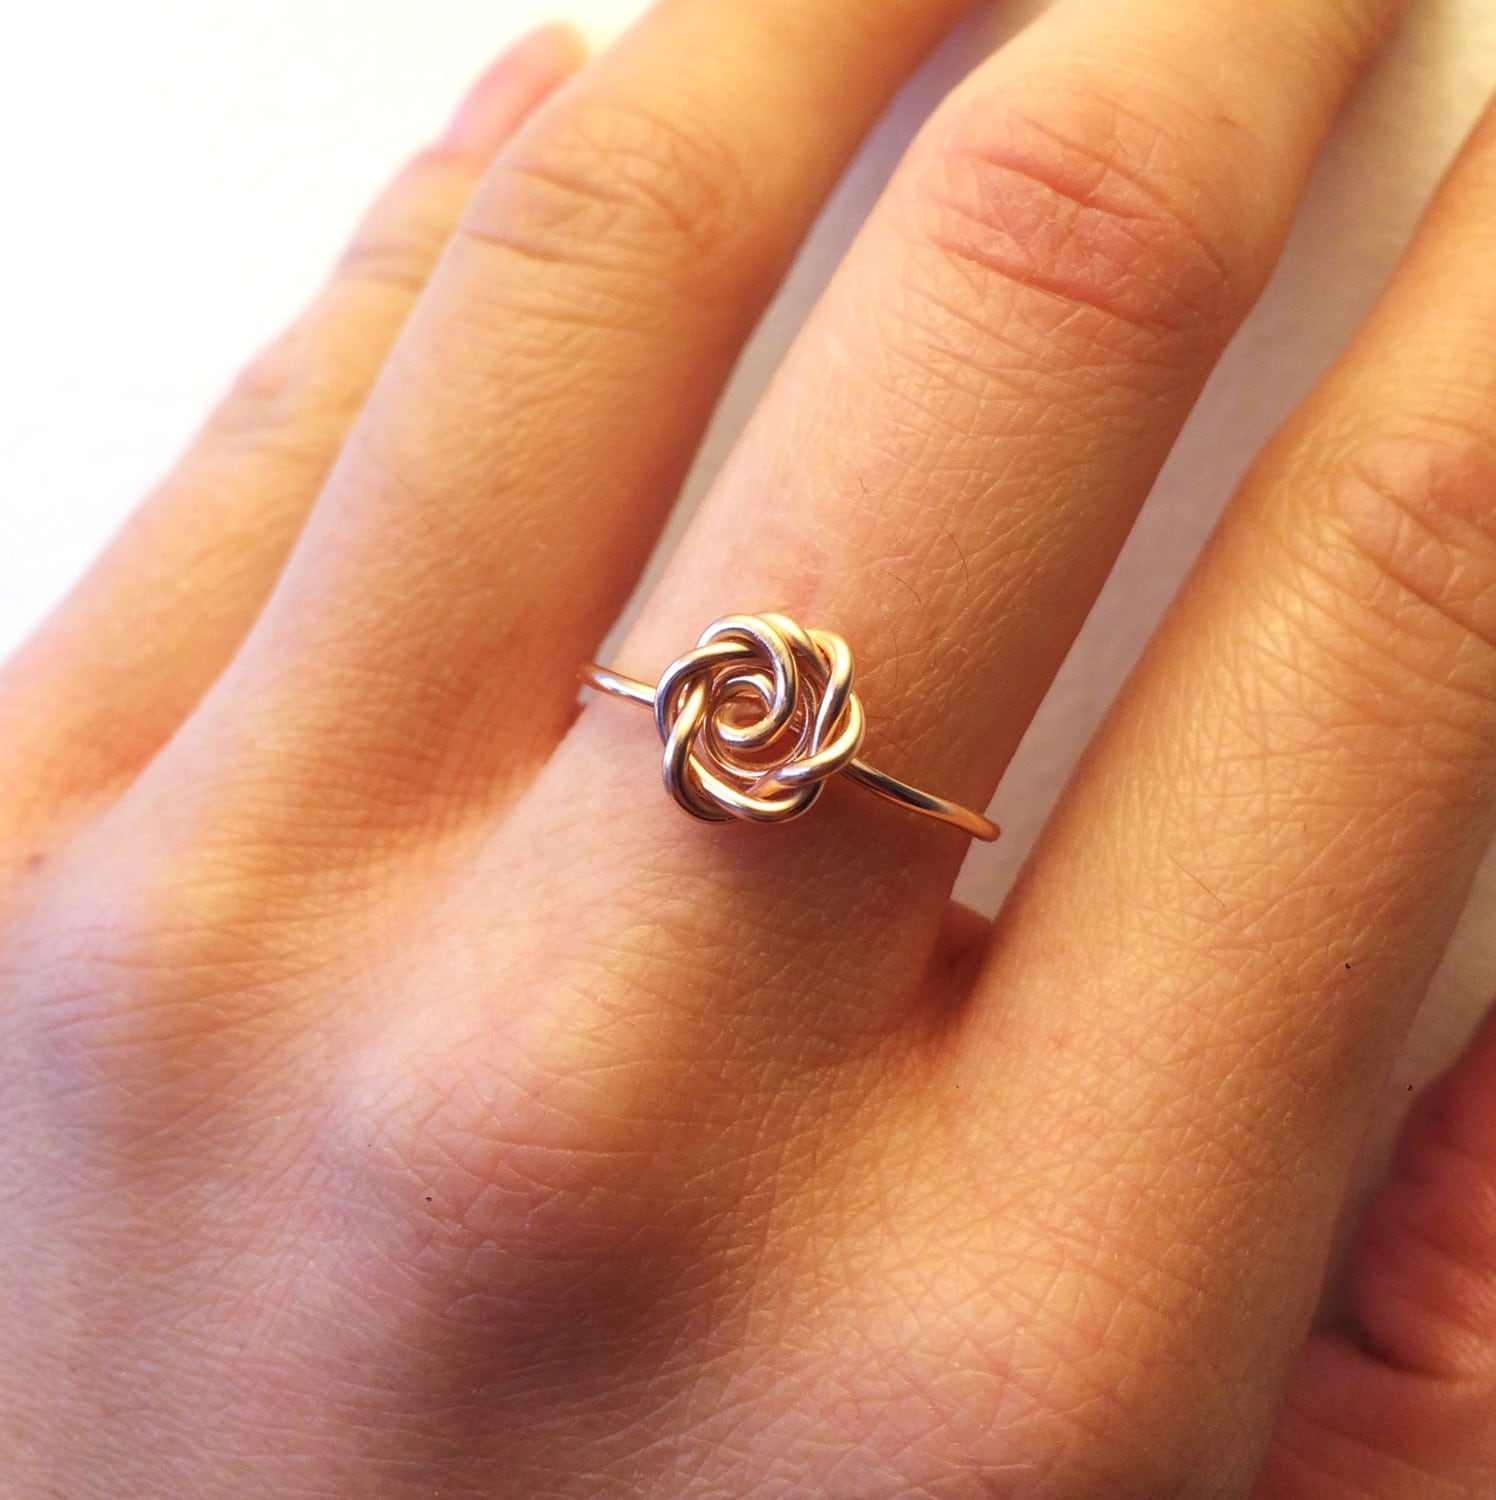 Rose Ring Rose Gold 14K Gold-Filled /Sterling Silver Wire